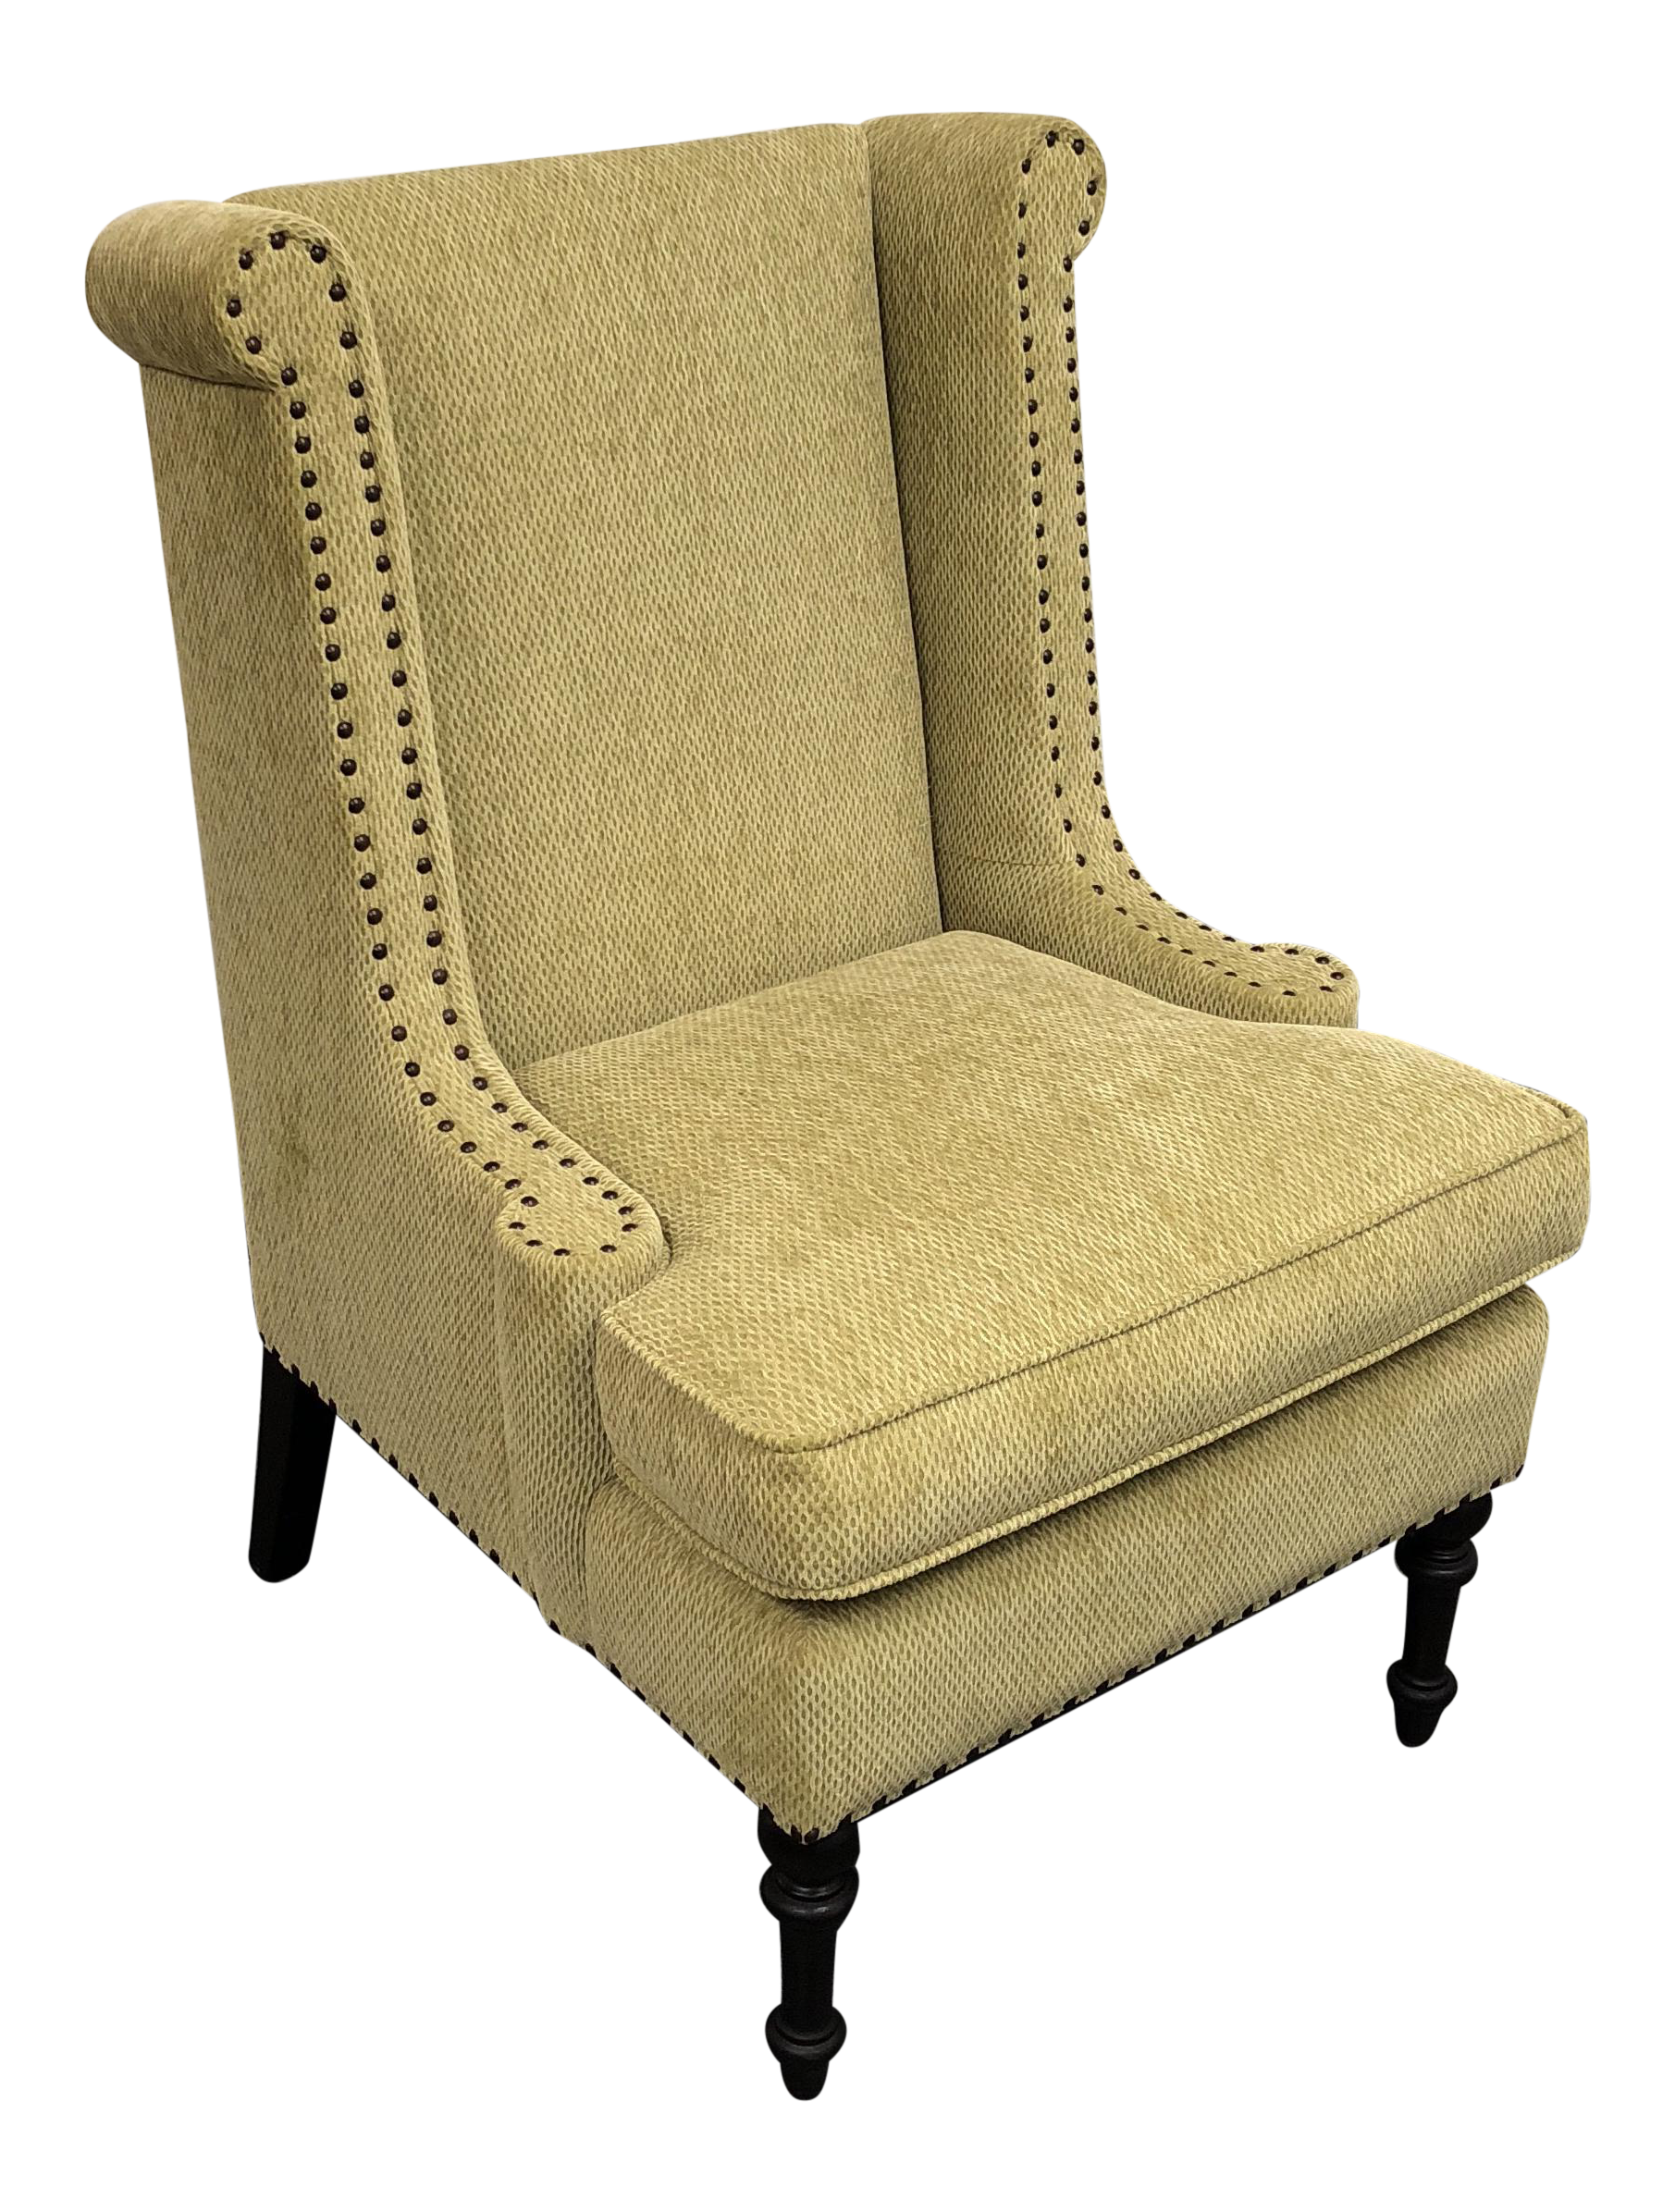 Custom Upholstered Kravet Fabric Arm Chair